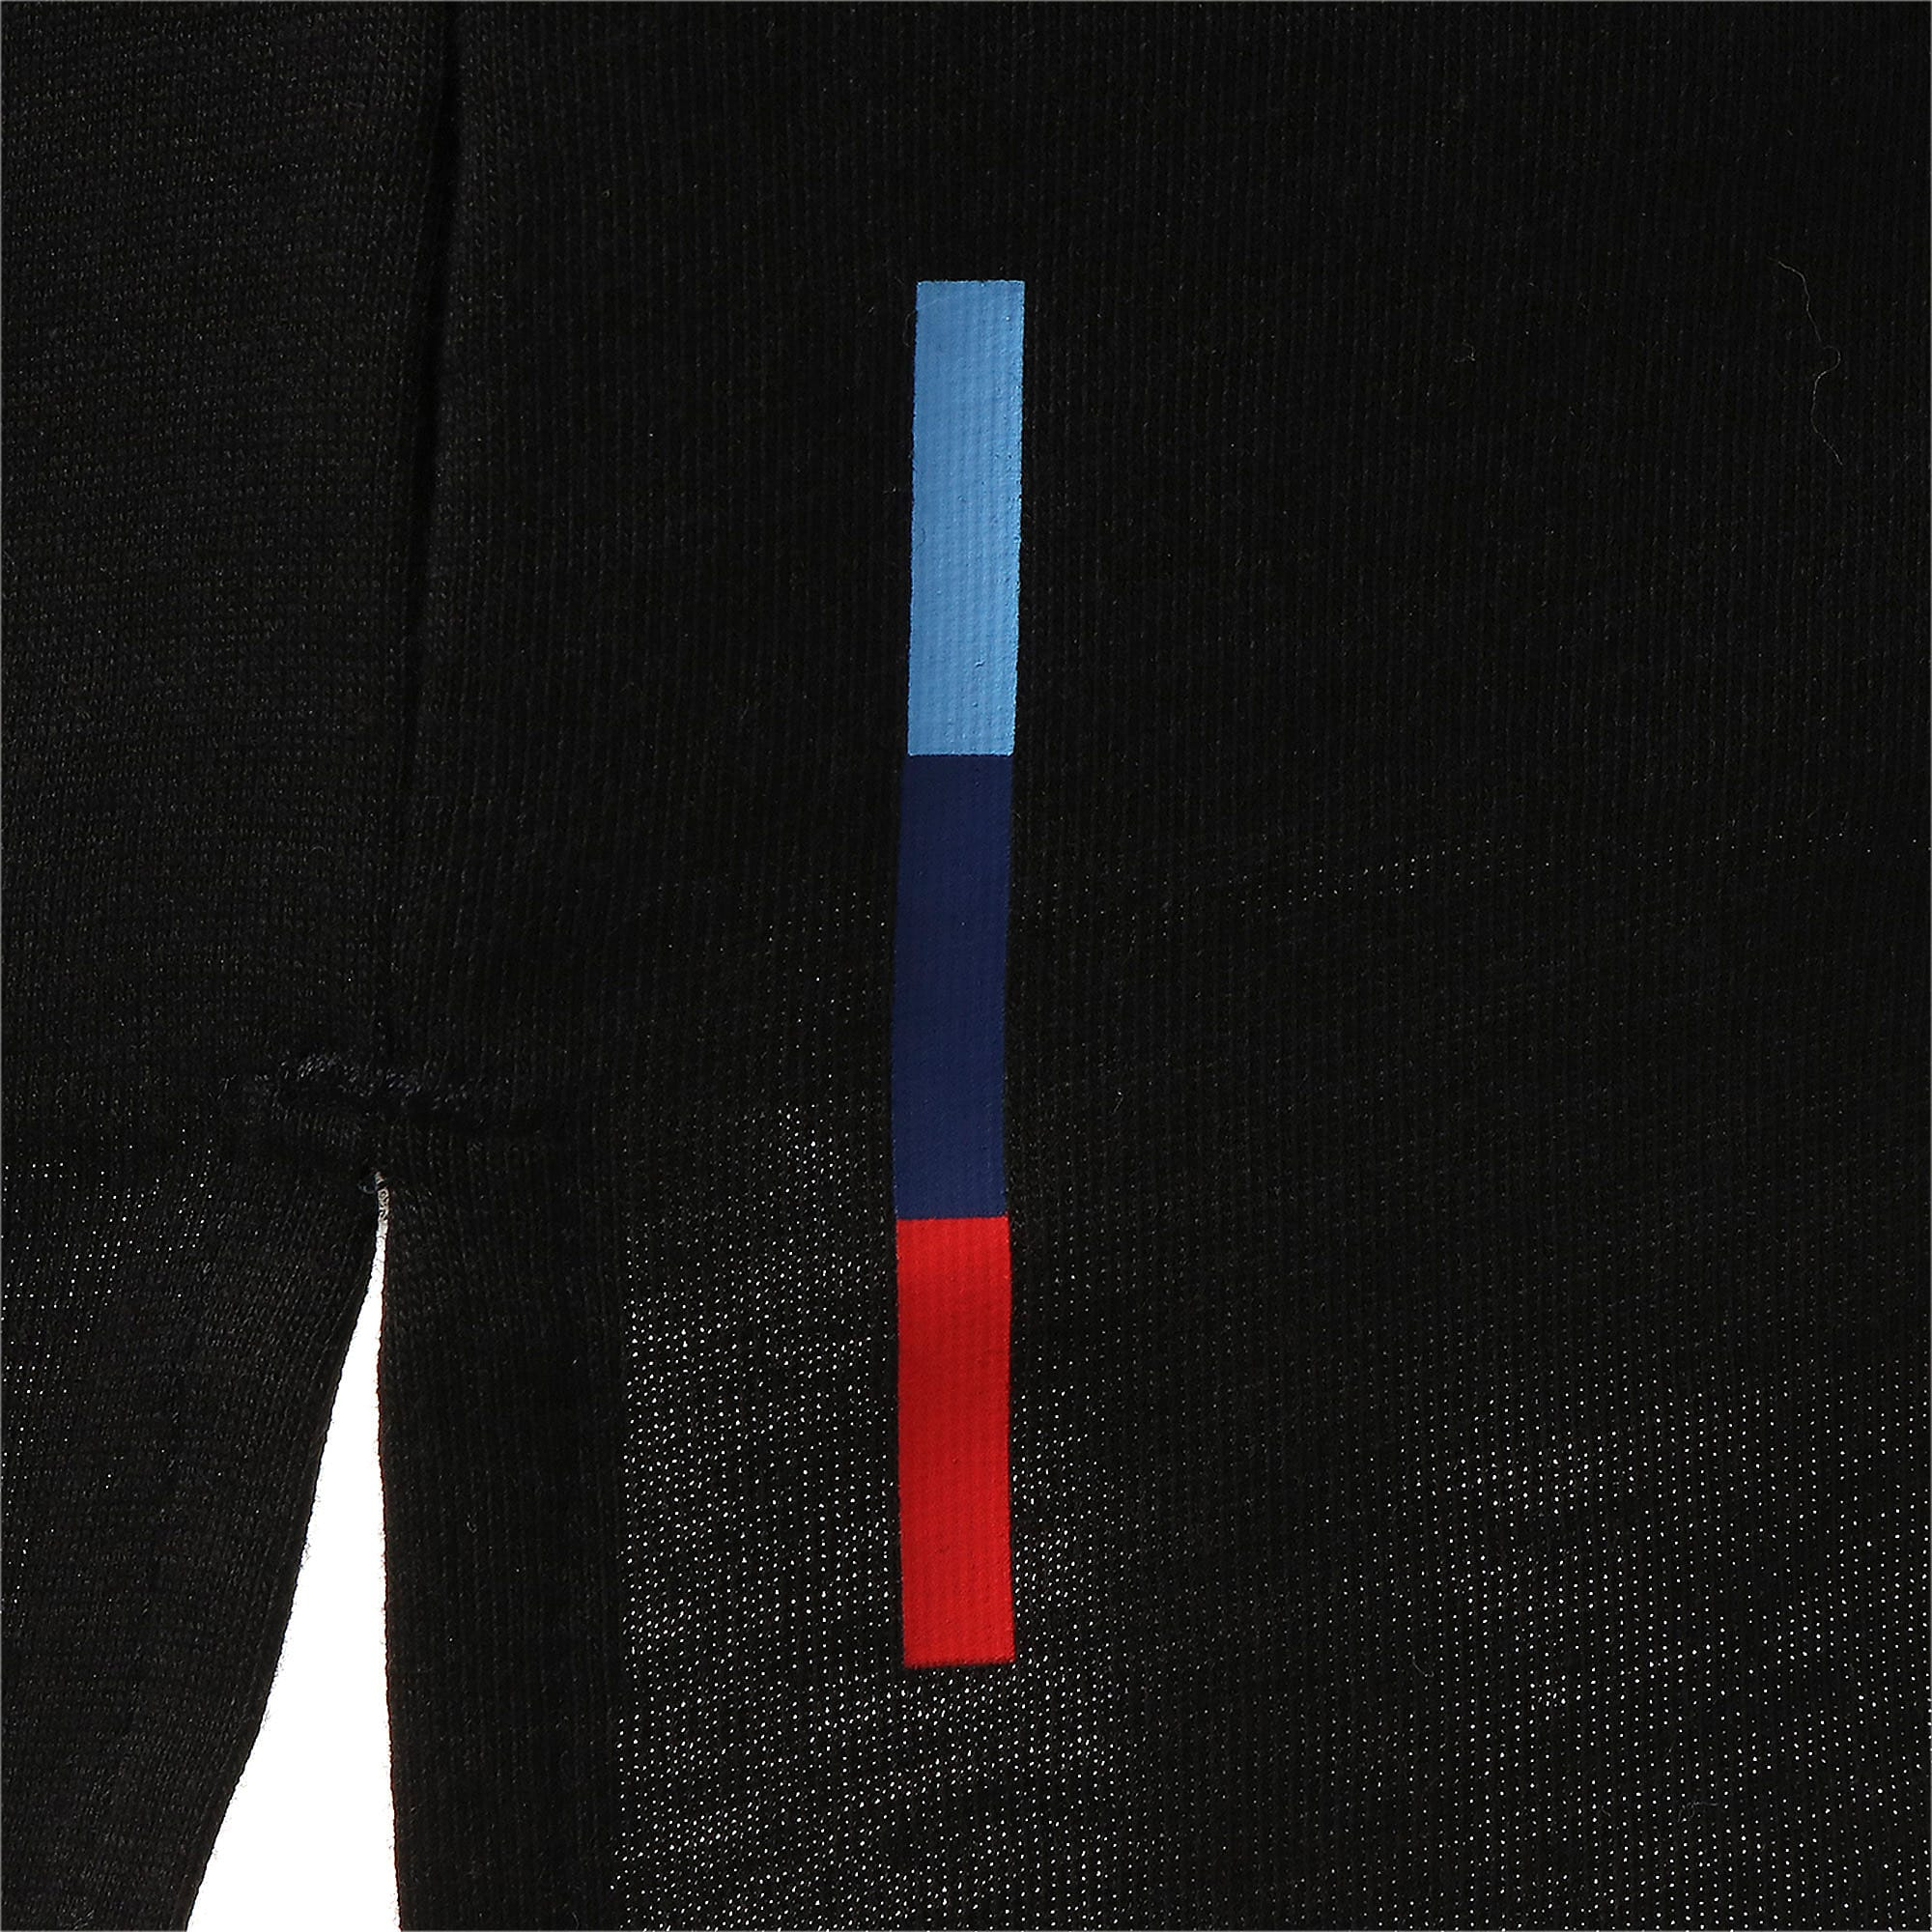 Thumbnail 12 of BMW MMS ライフ Tシャツ, Puma Black, medium-JPN